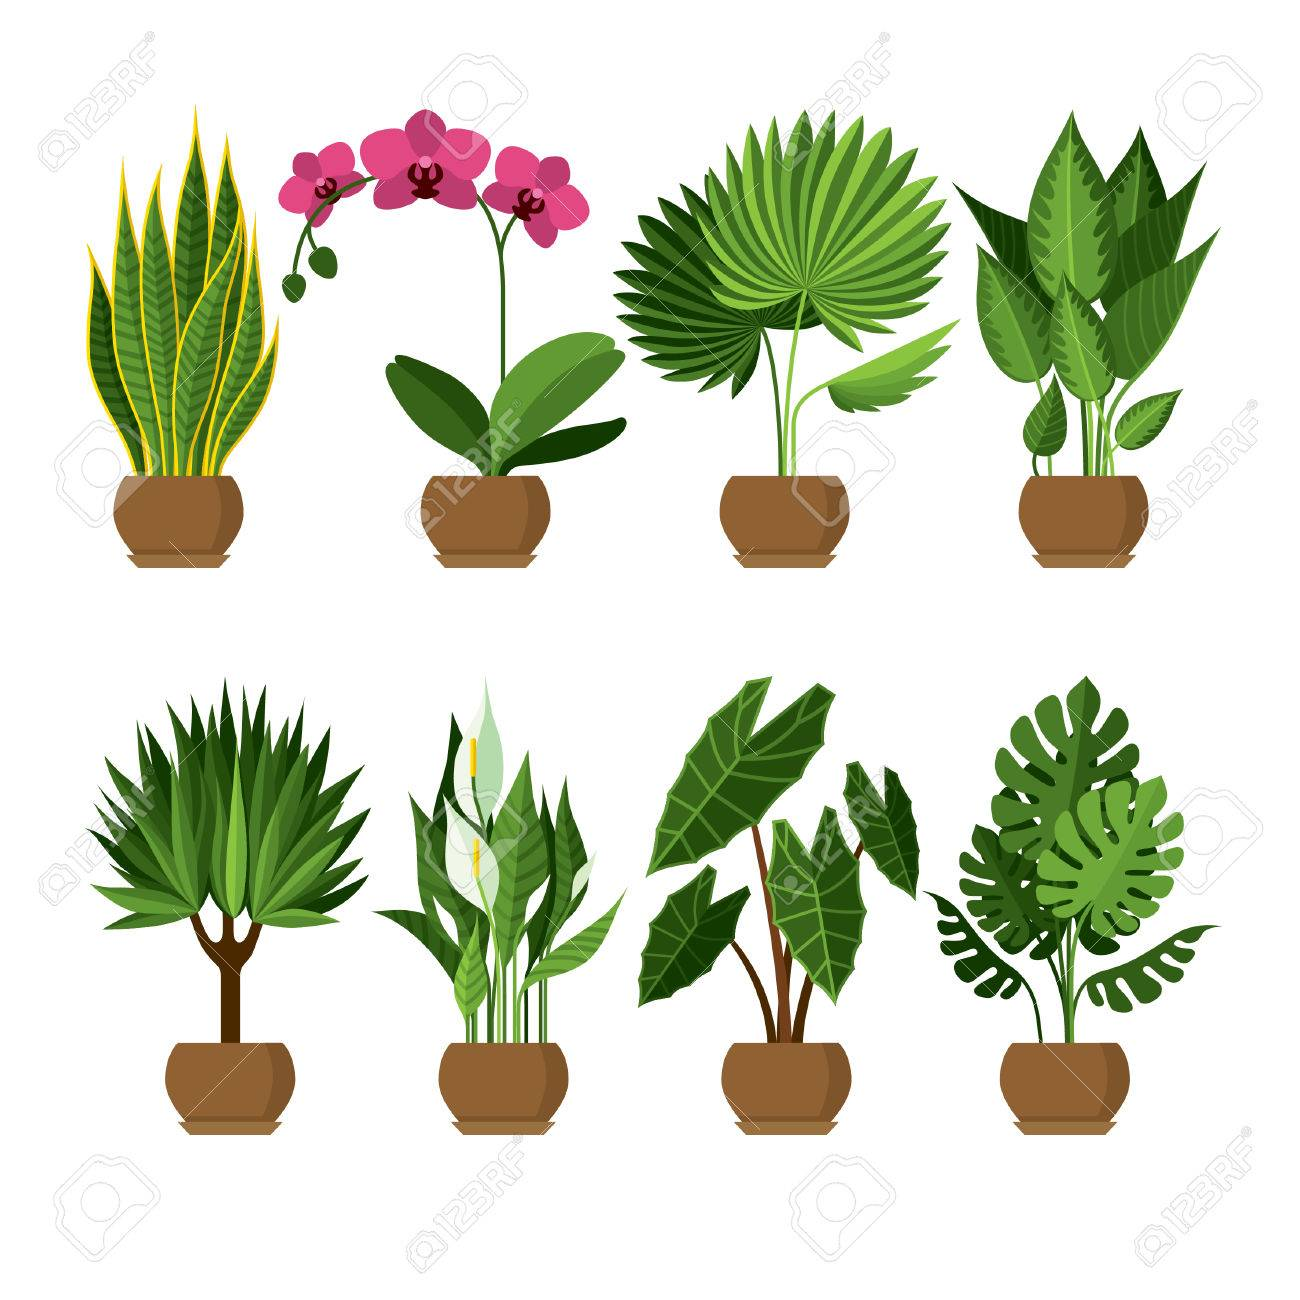 decorative plants for office. vector collection of indoor, house plants in pots. home decorative and deciduous for office d